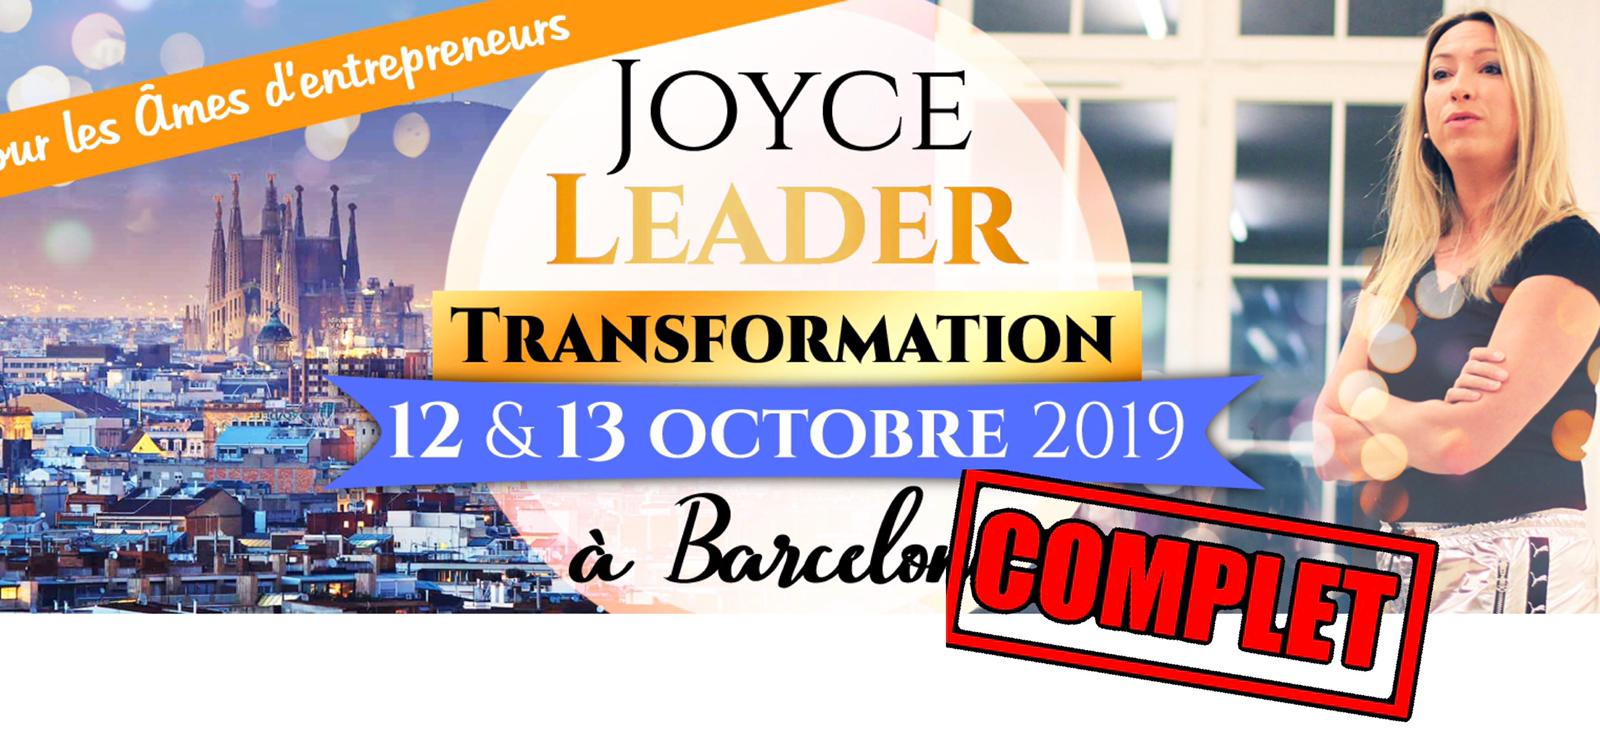 Joyce's Leader Transformation 7